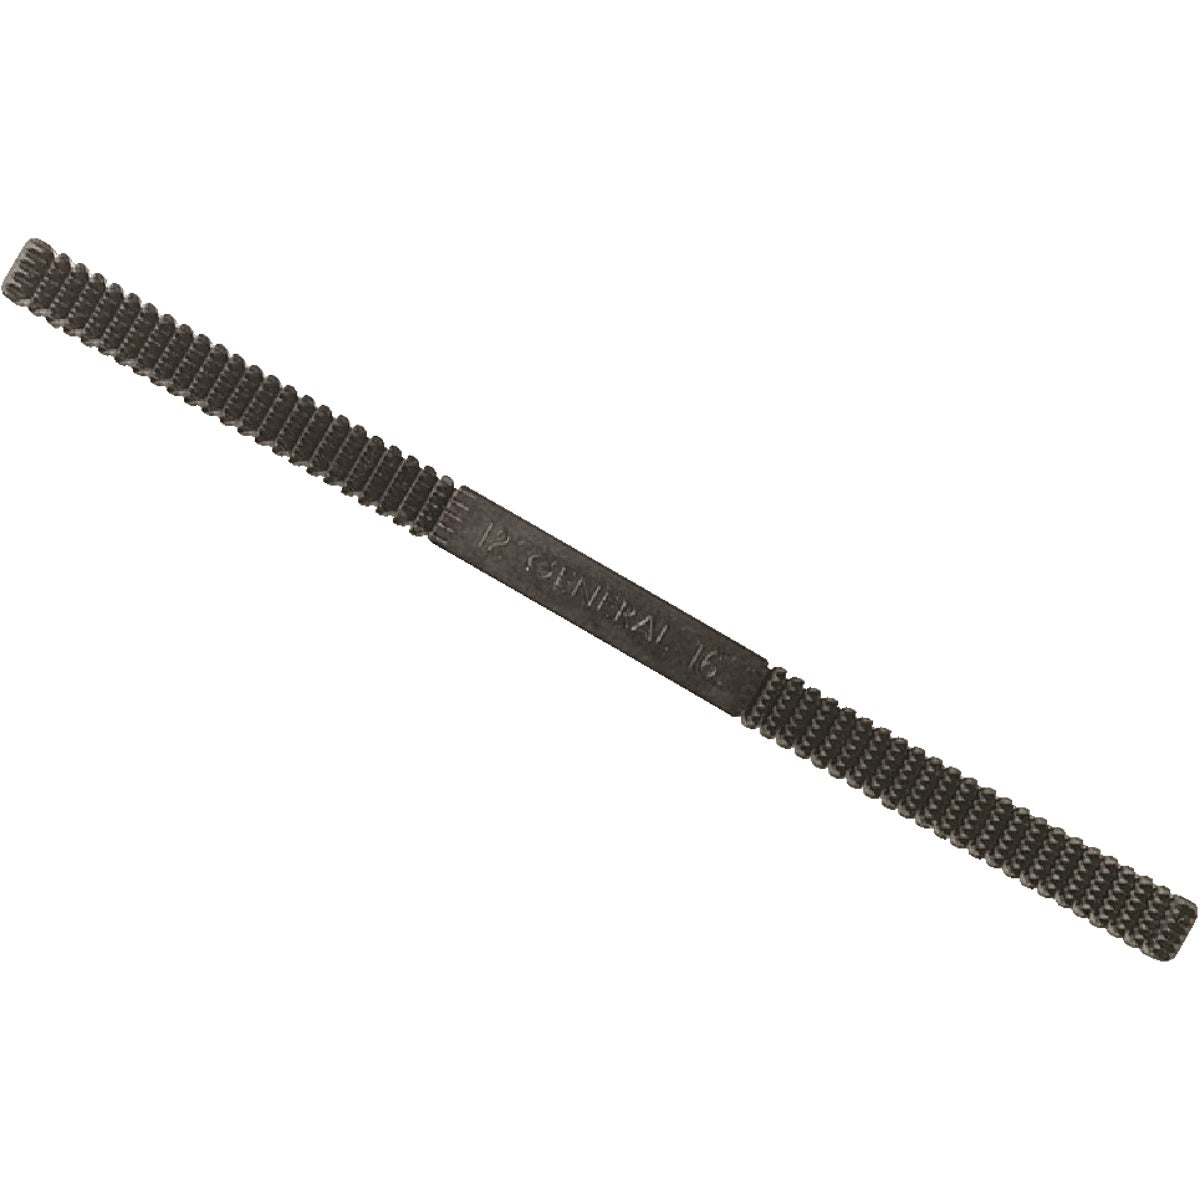 THREAD REPAIR FILE - 177-2 by Gen Tools Mfg